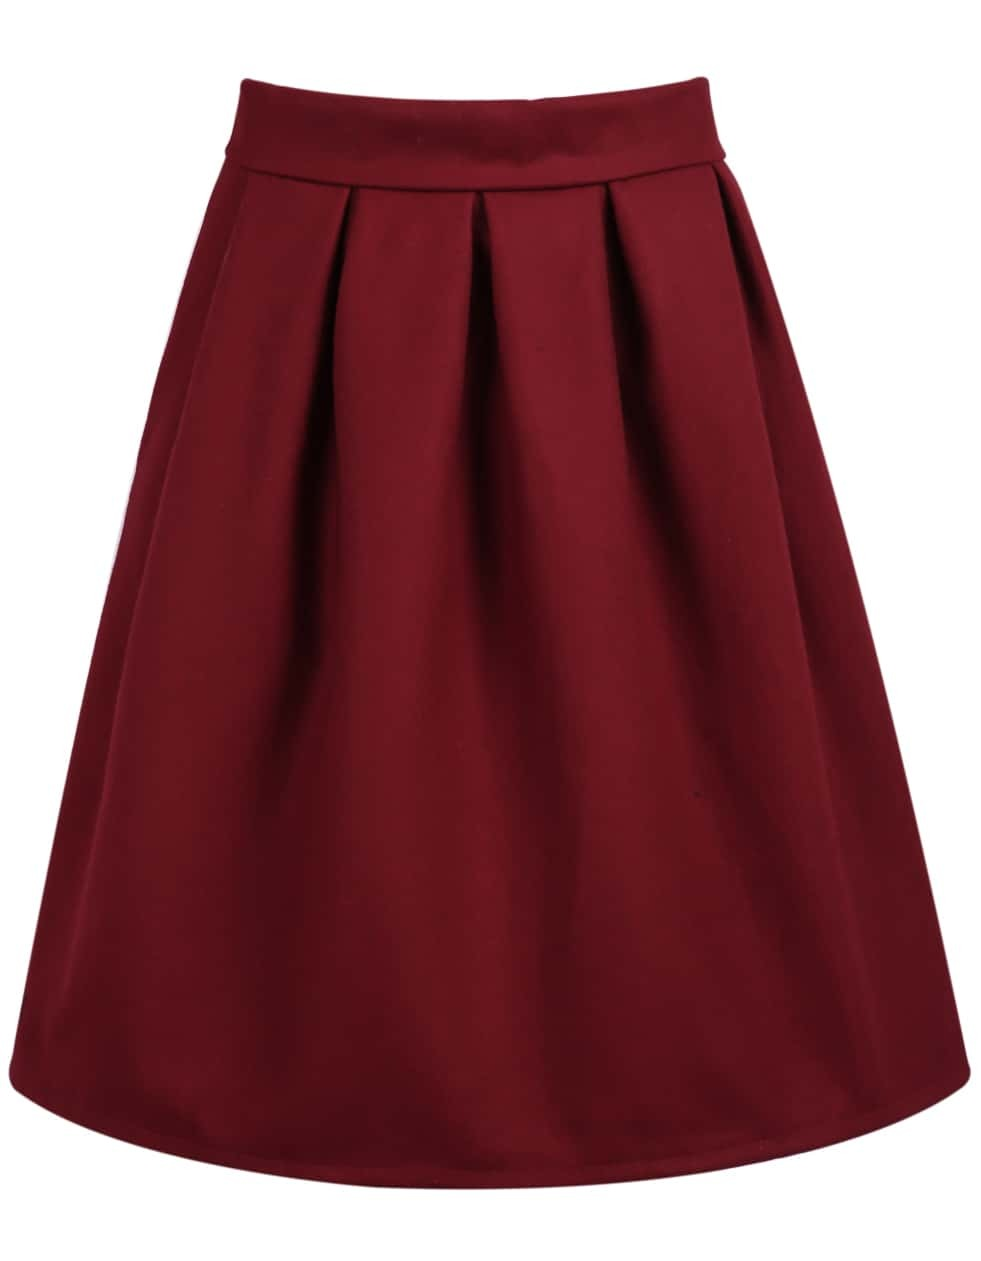 Red High Waist Pleated Skirt -SheIn(Sheinside)